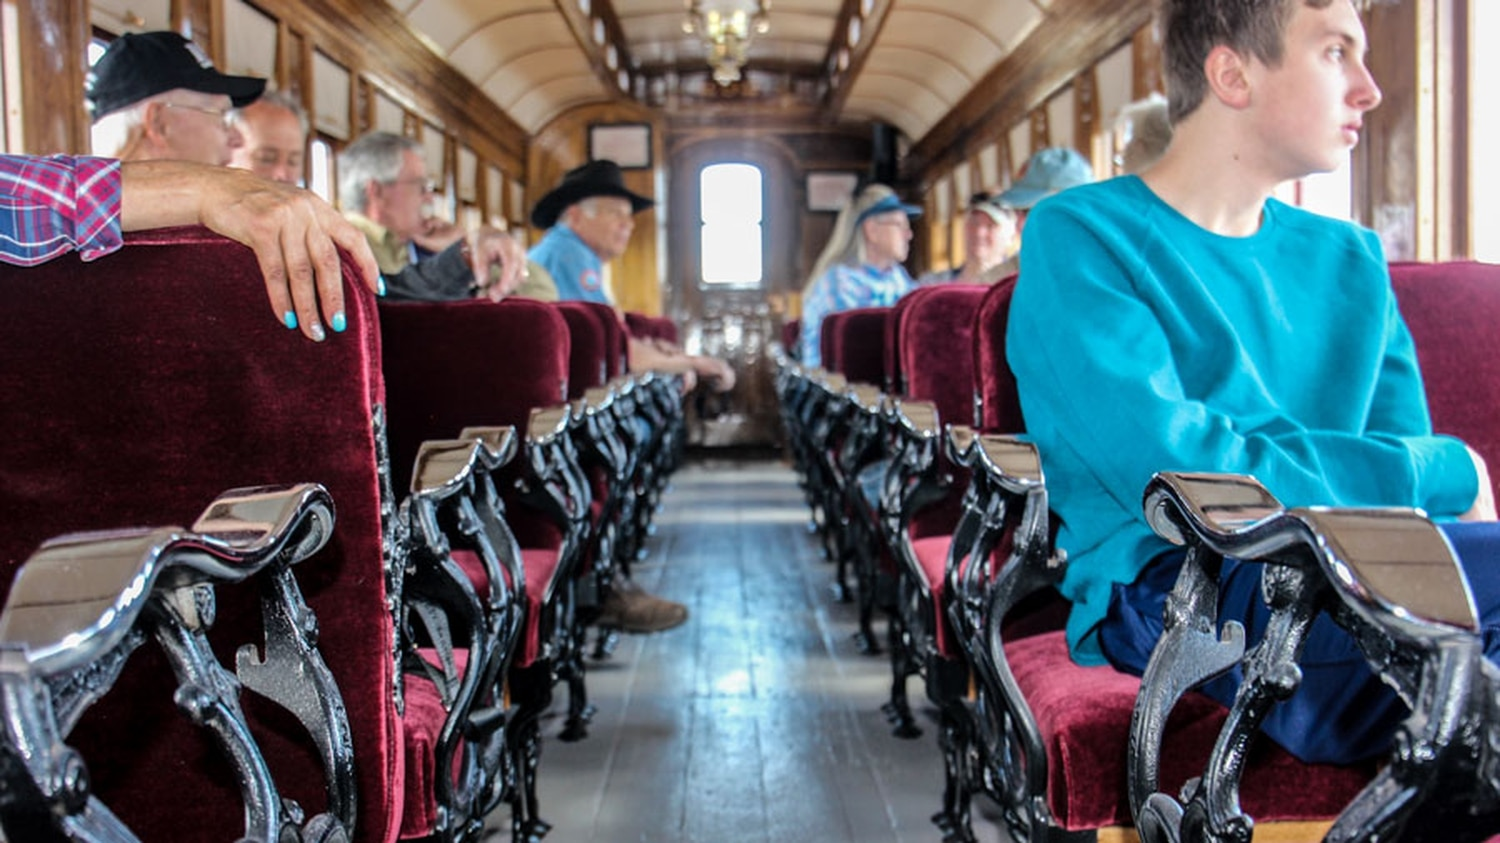 Historic restoration of passenger cars includes the nickel-plated hand rails and velvet upholstery. This car was pulled by the No. 168 engine on May 26, 2021, opening day out of Antonito, Colorado.